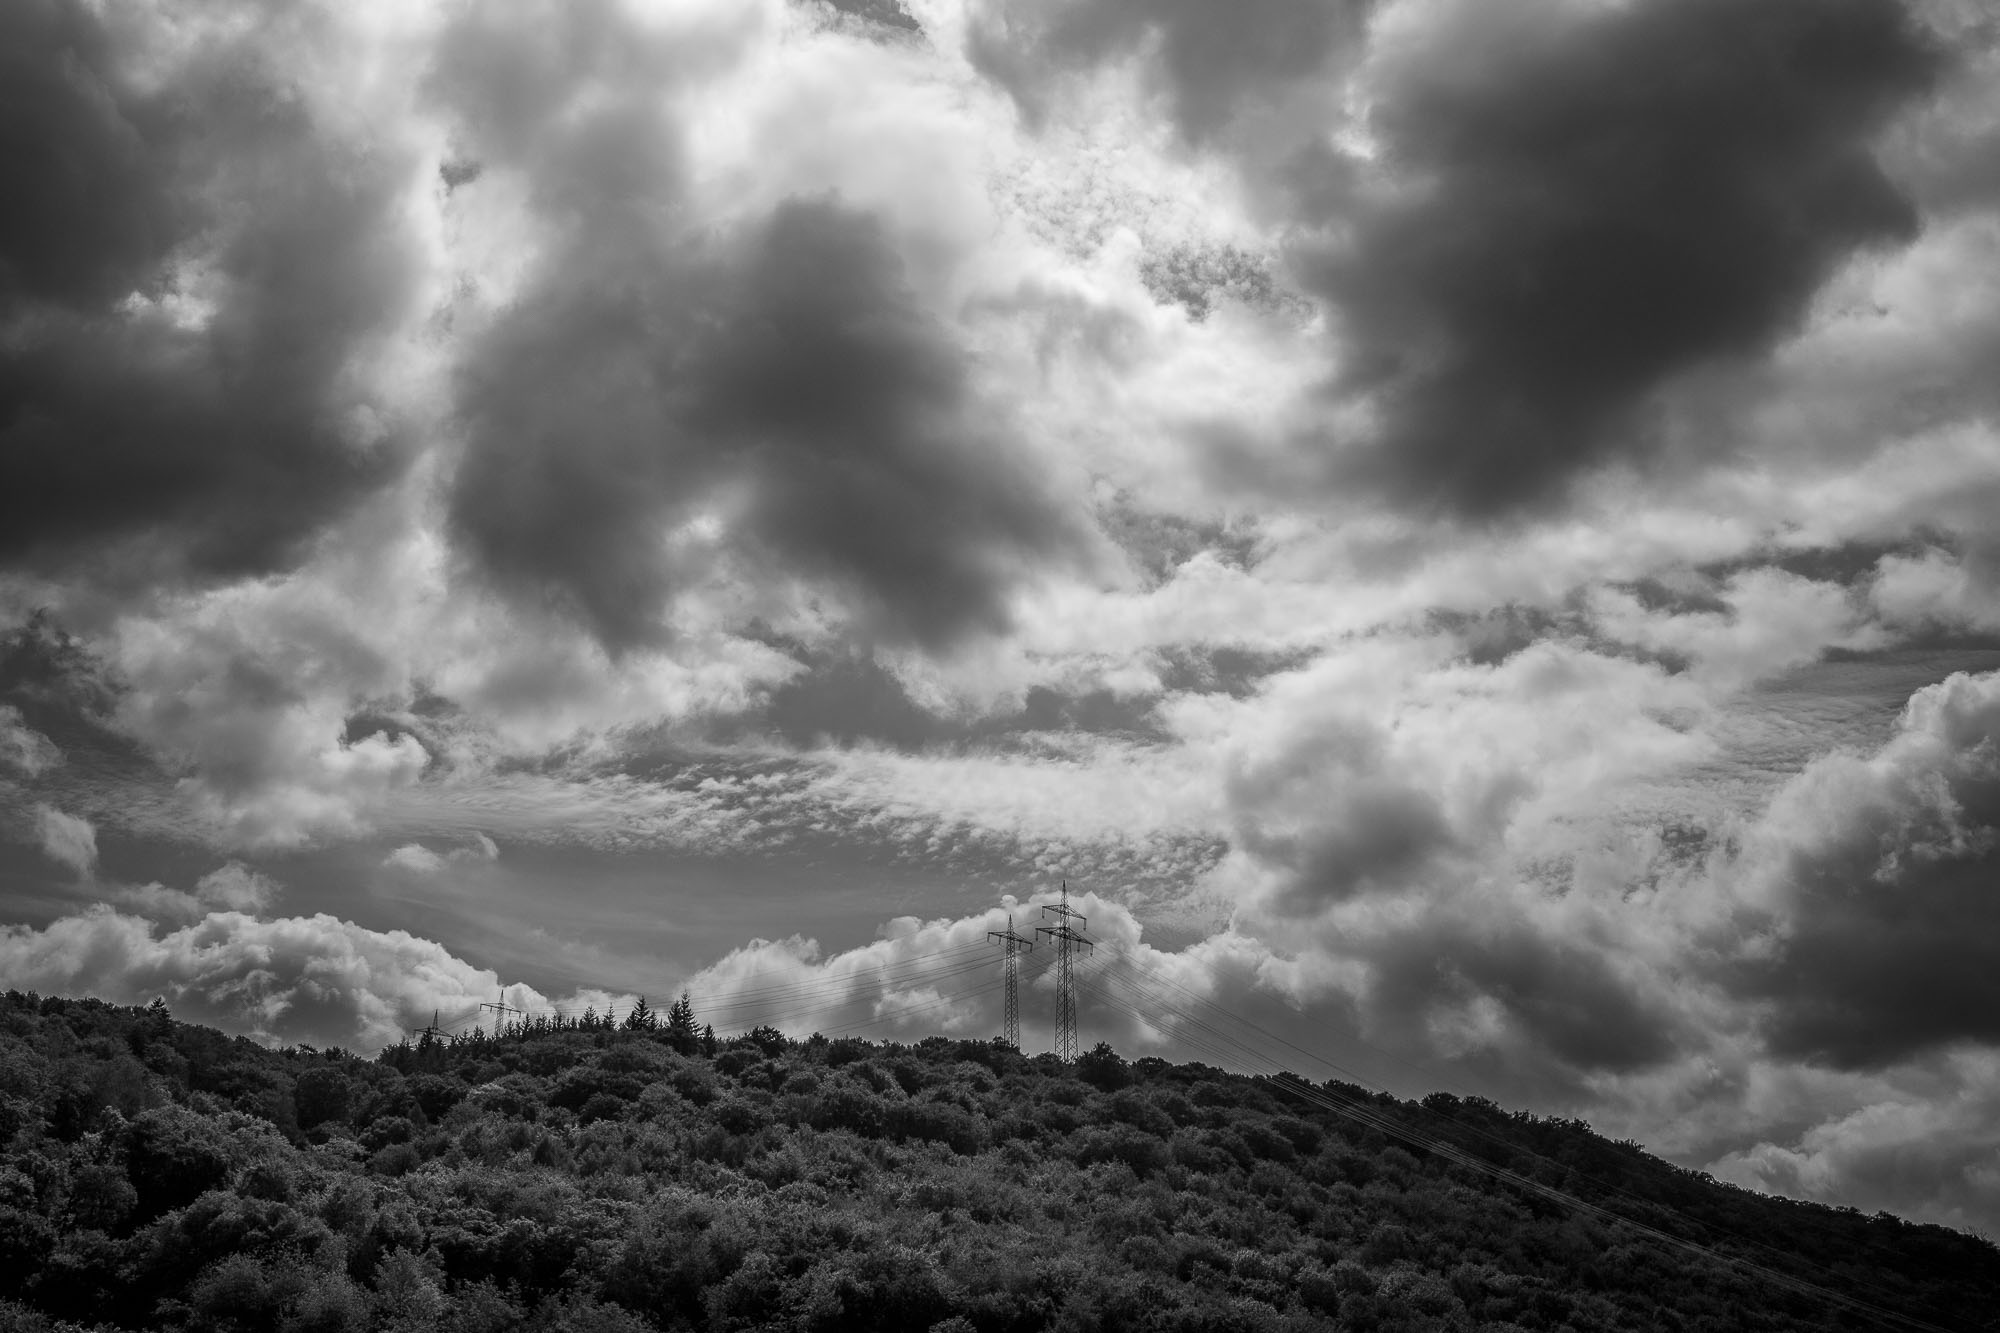 Electrical towers peak out from a wooded hill with a dramatic cloud cover above